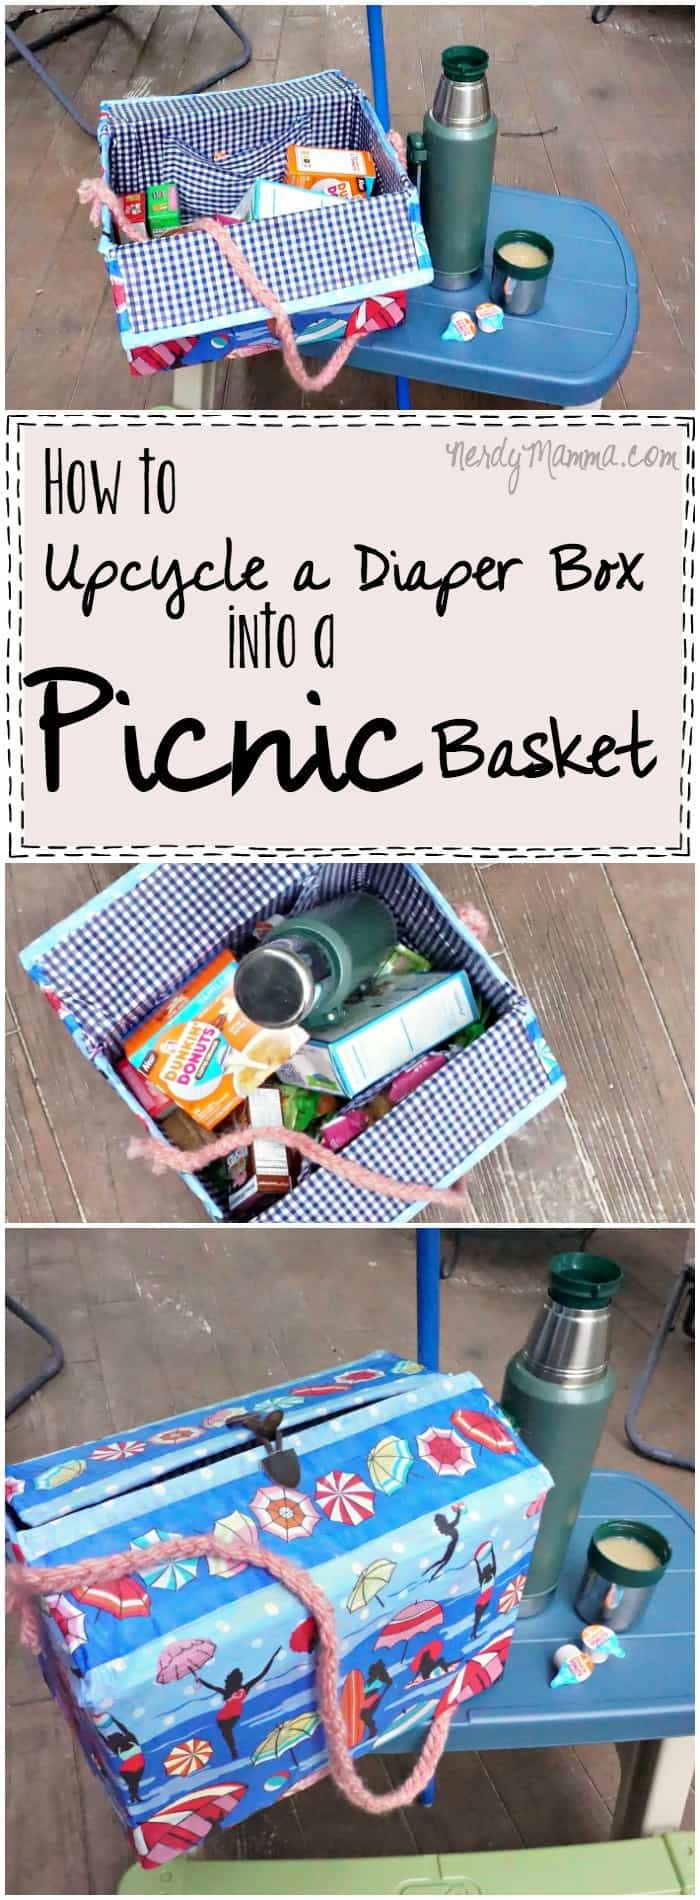 I love this quick tutorial on how to turn a diaper box into a picnic basket! So easy...and just what I need to cart lunches around this summer!